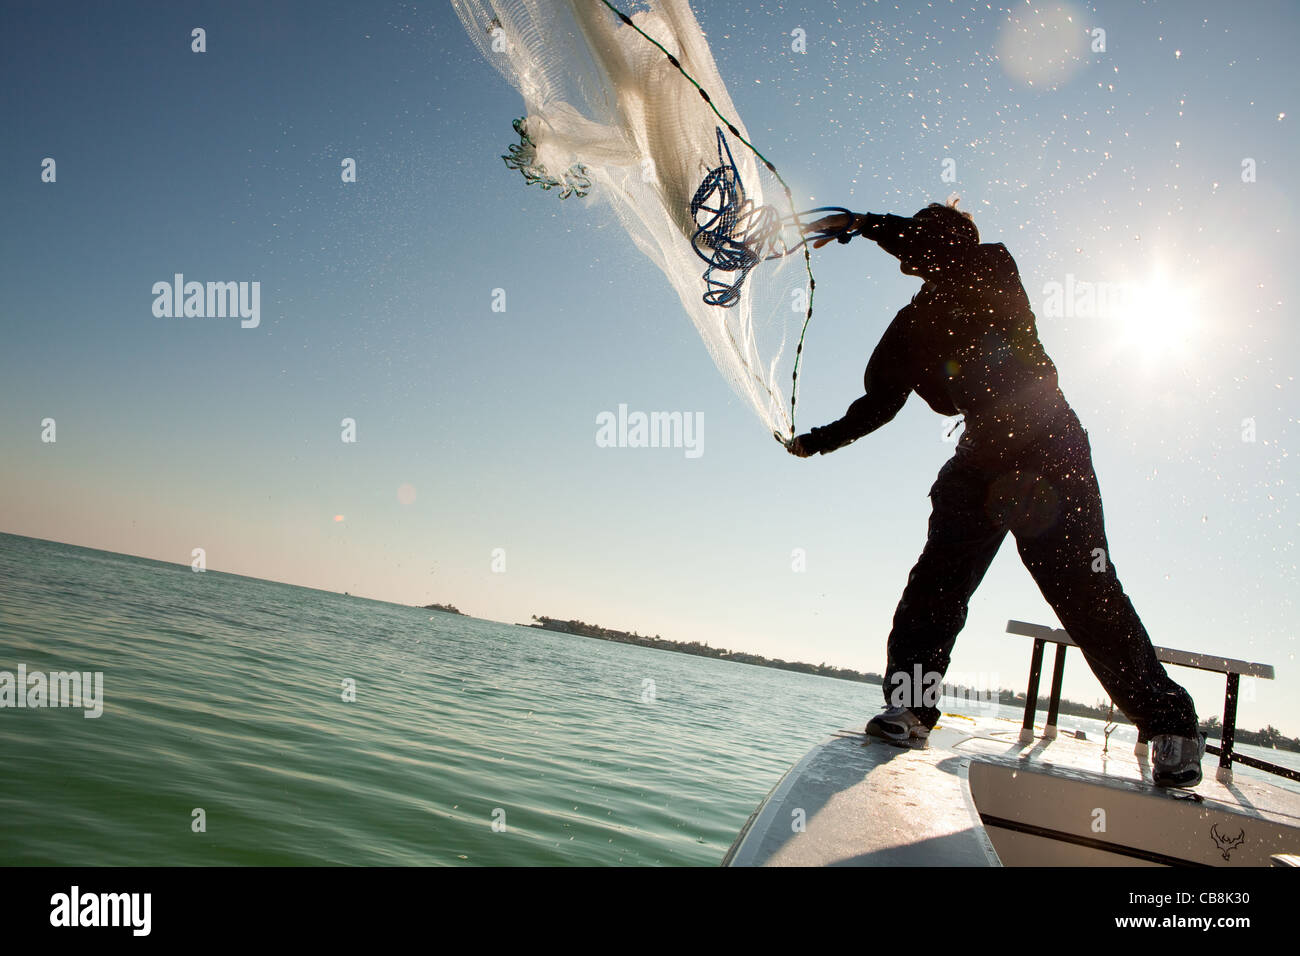 Fisherman casting a net off his boat in the Florida Keys. Stock Photo